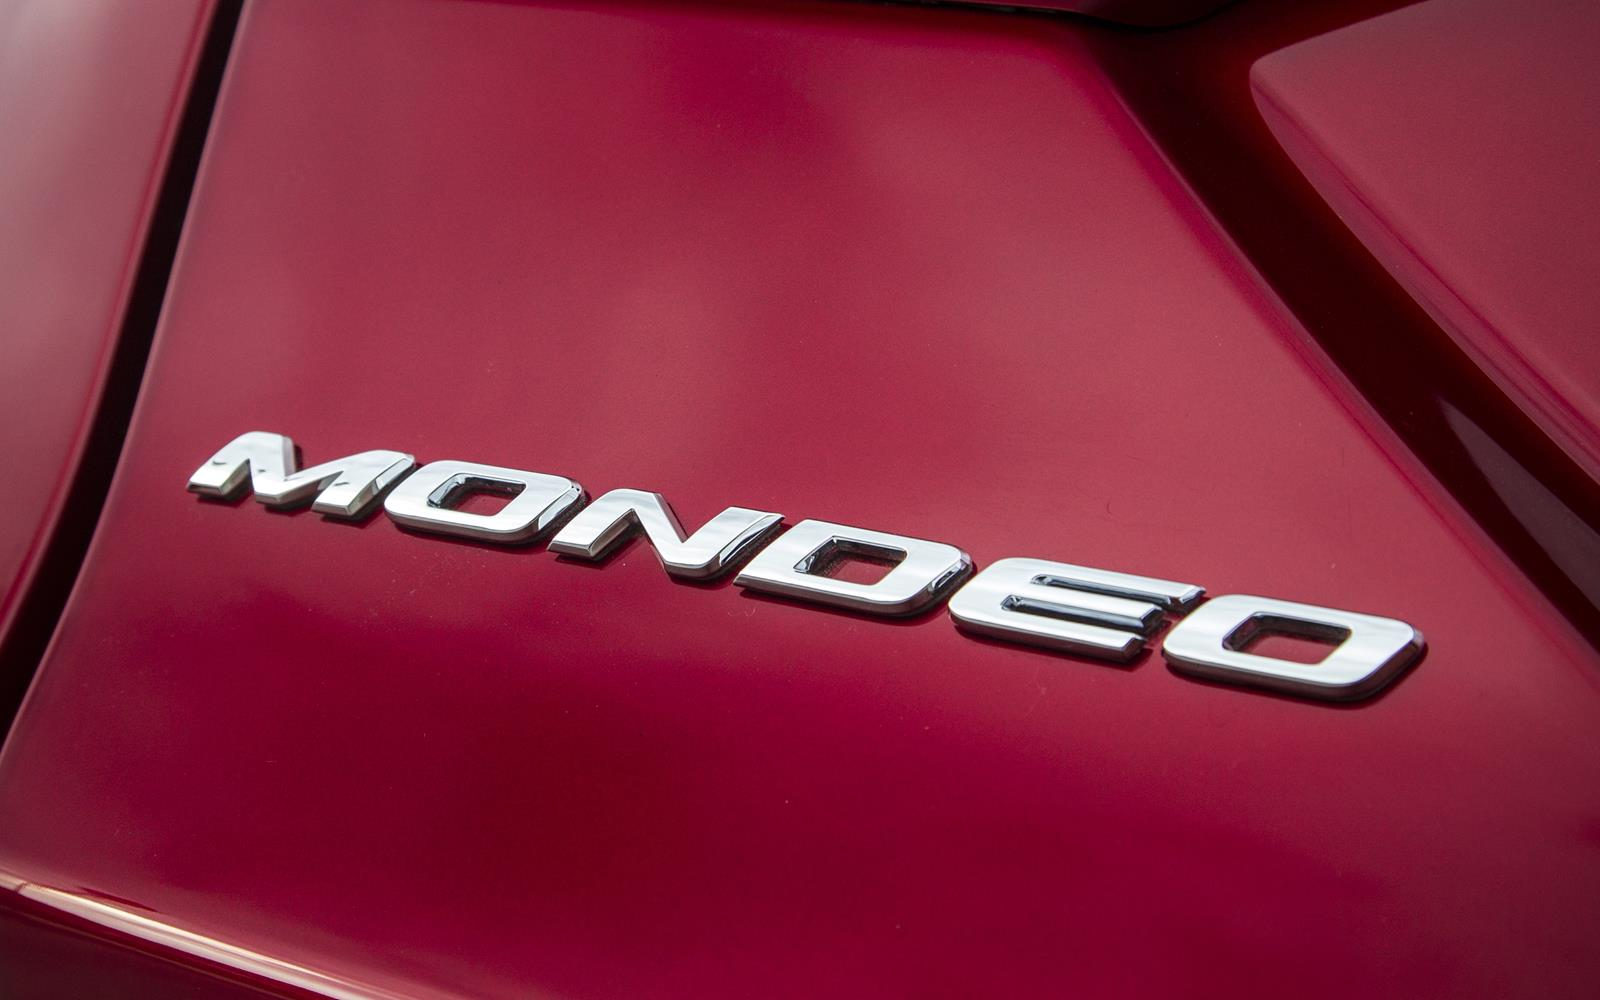 Ford Mondeo 2015 Badge Detail